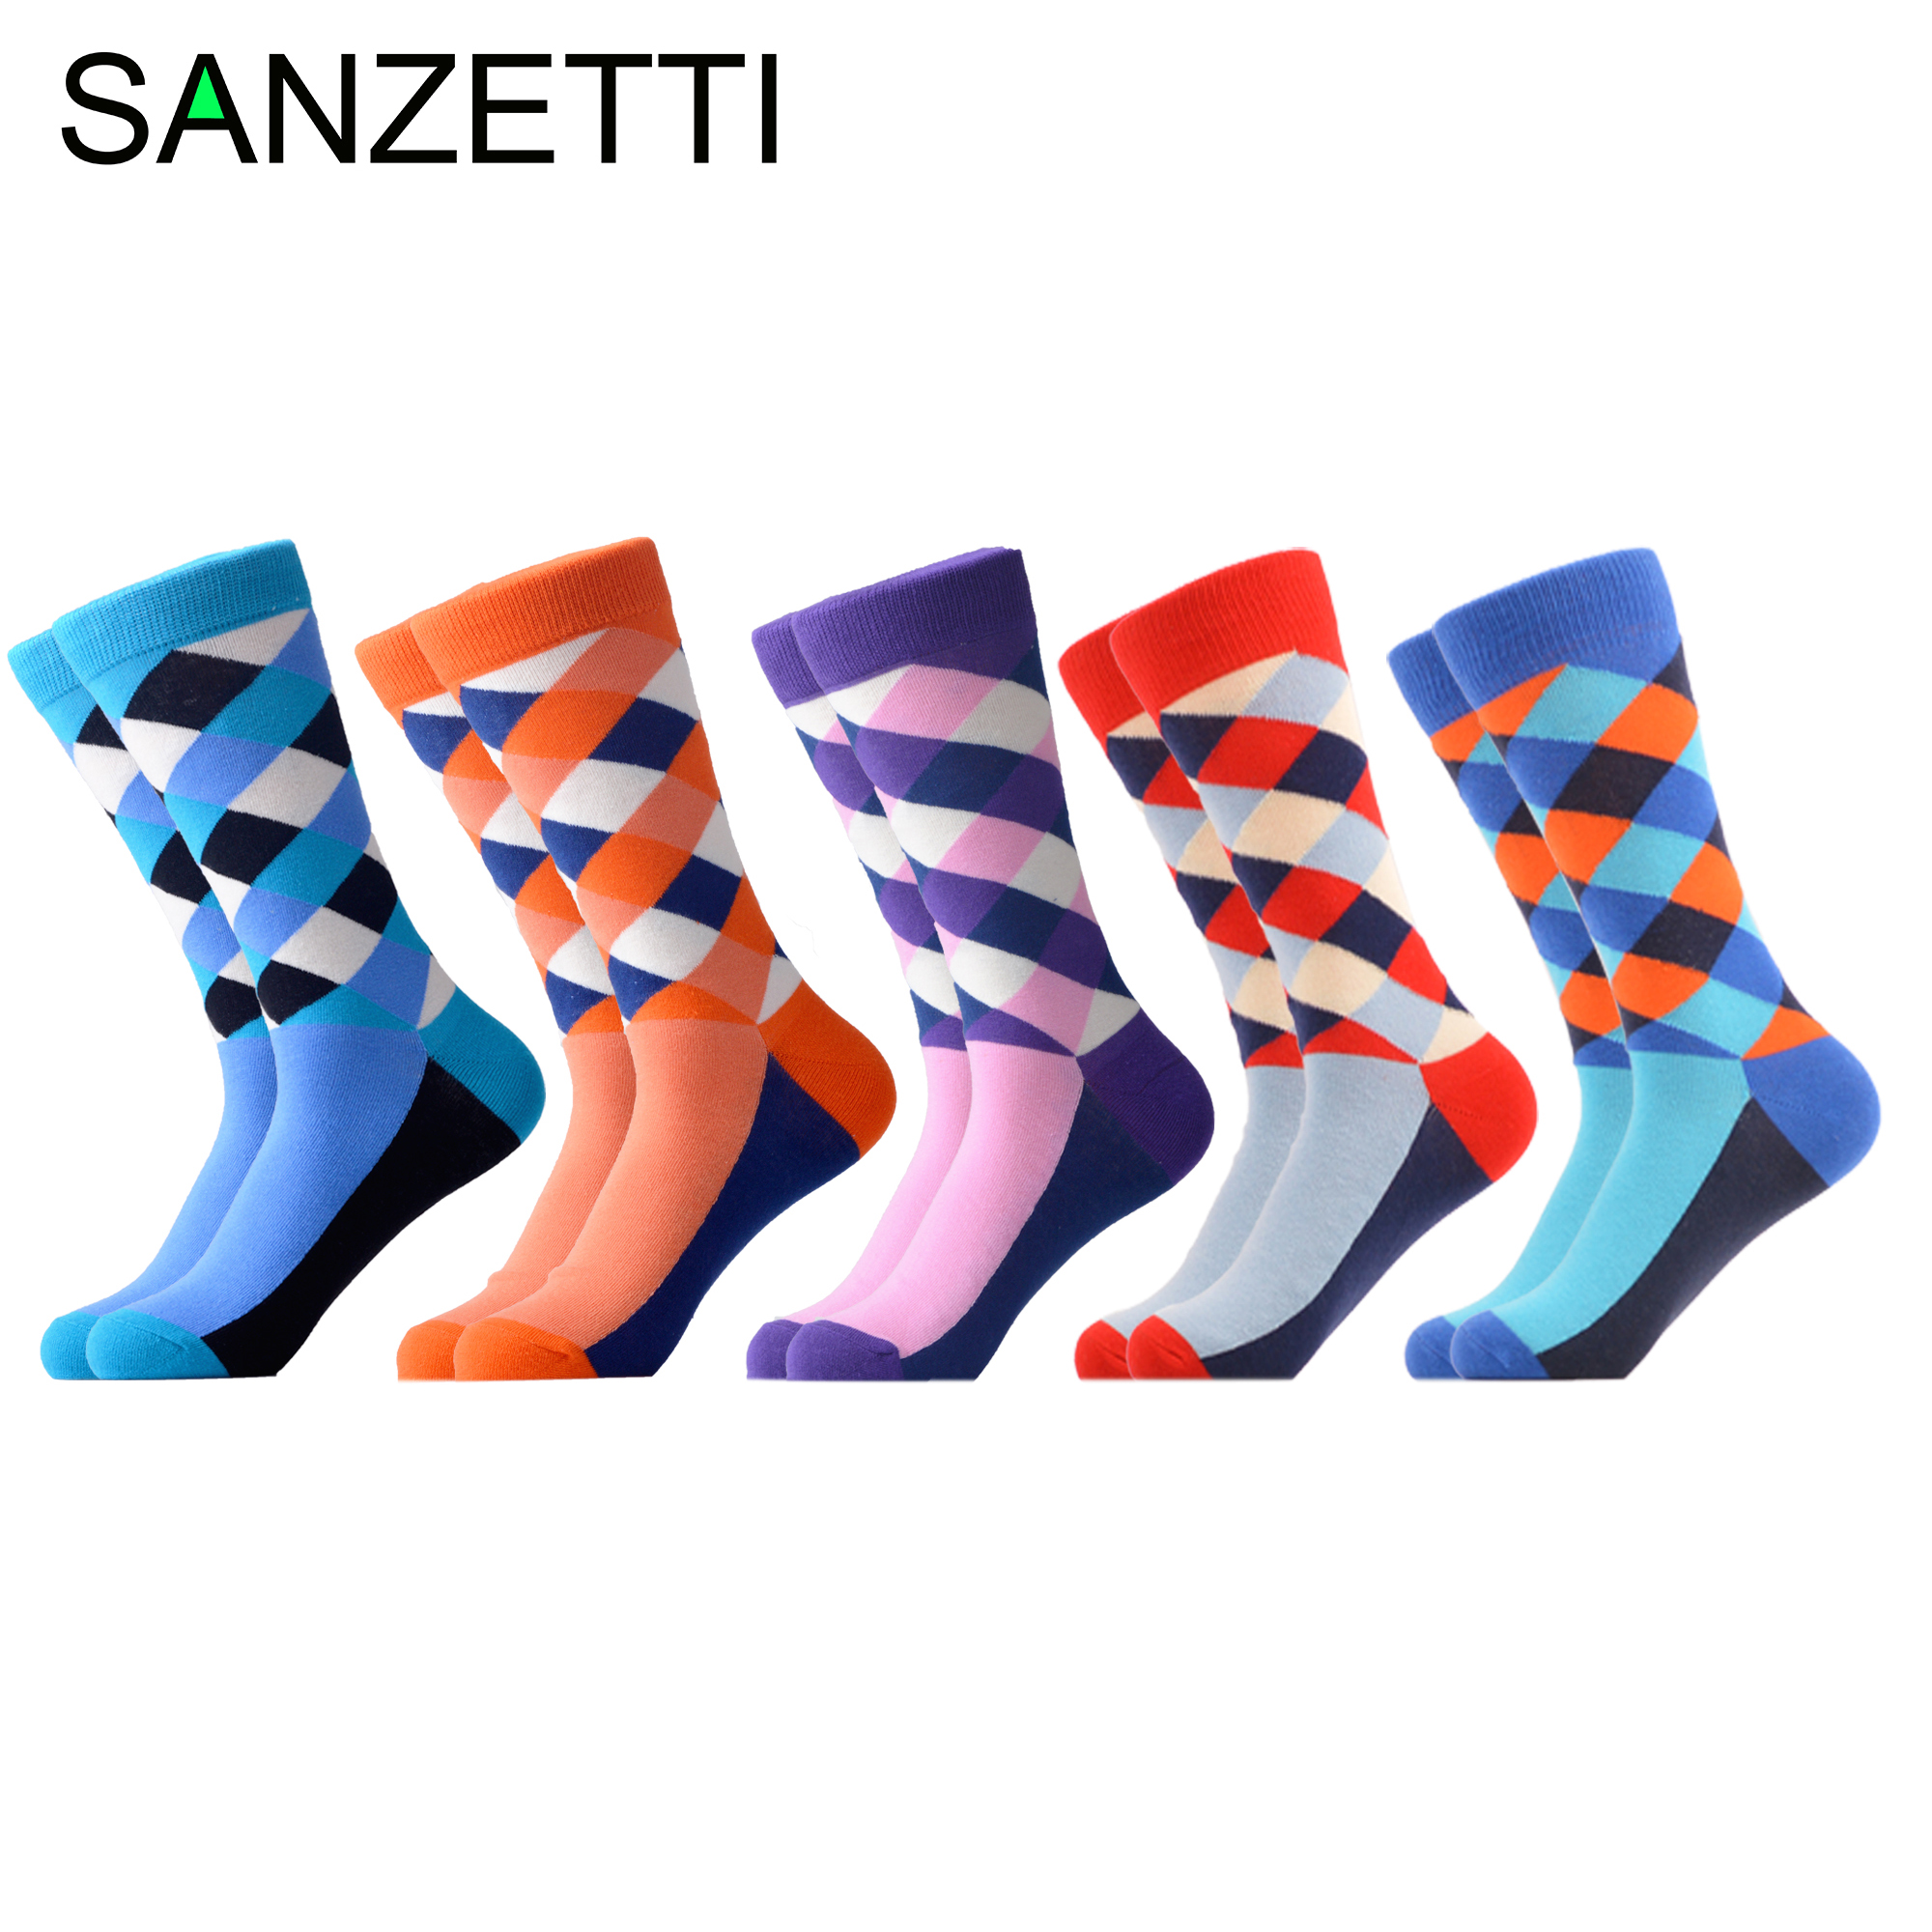 SANZETTI 5 Pairs/lot Funny Men's Classic Combed Cotton Casual Dress Socks Grid Stripe Pattern Colorful Wedding Socks For Gifts